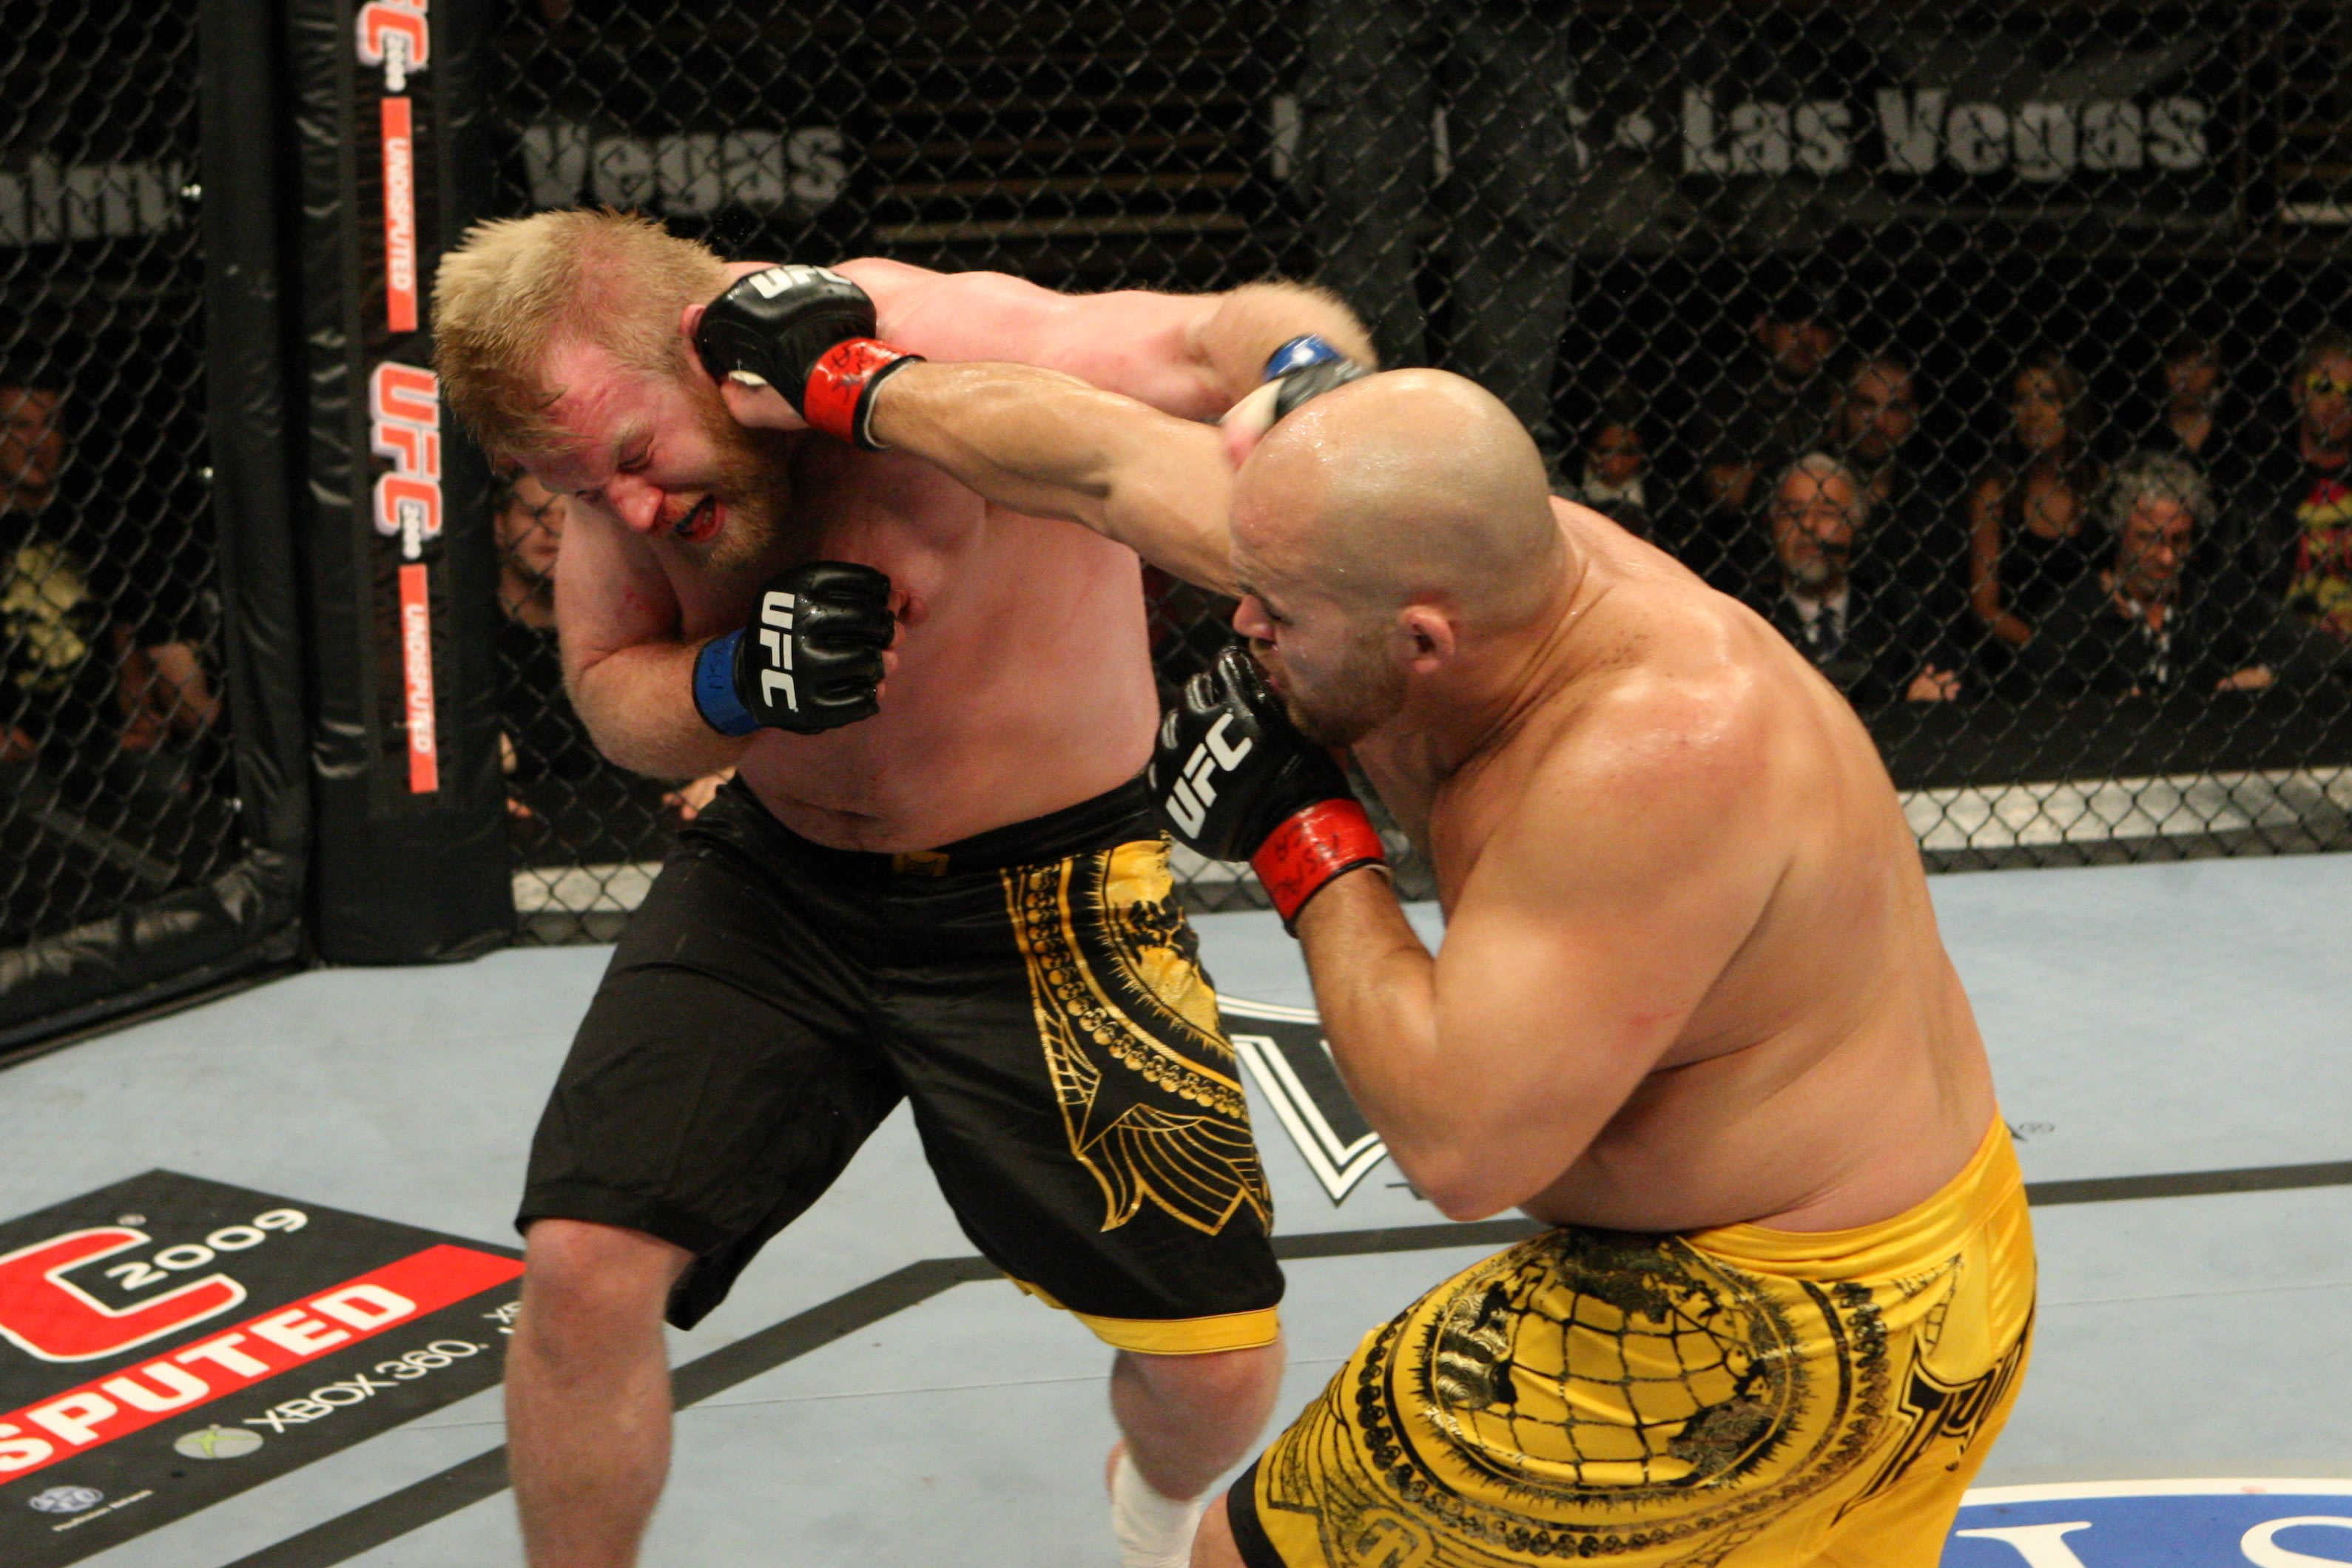 LAS VEGAS - DECEMBER 5: Jon Madsen (yellow shorts) def. Justin Wren (black shorts) - Split Decision during The Ultimate Fighter 10 Finale at The Pearl at the Palms on December 5, 2009 in Las Vegas, Nevada. (Photo by Josh Hedges/Zuffa LLC via Getty Images)